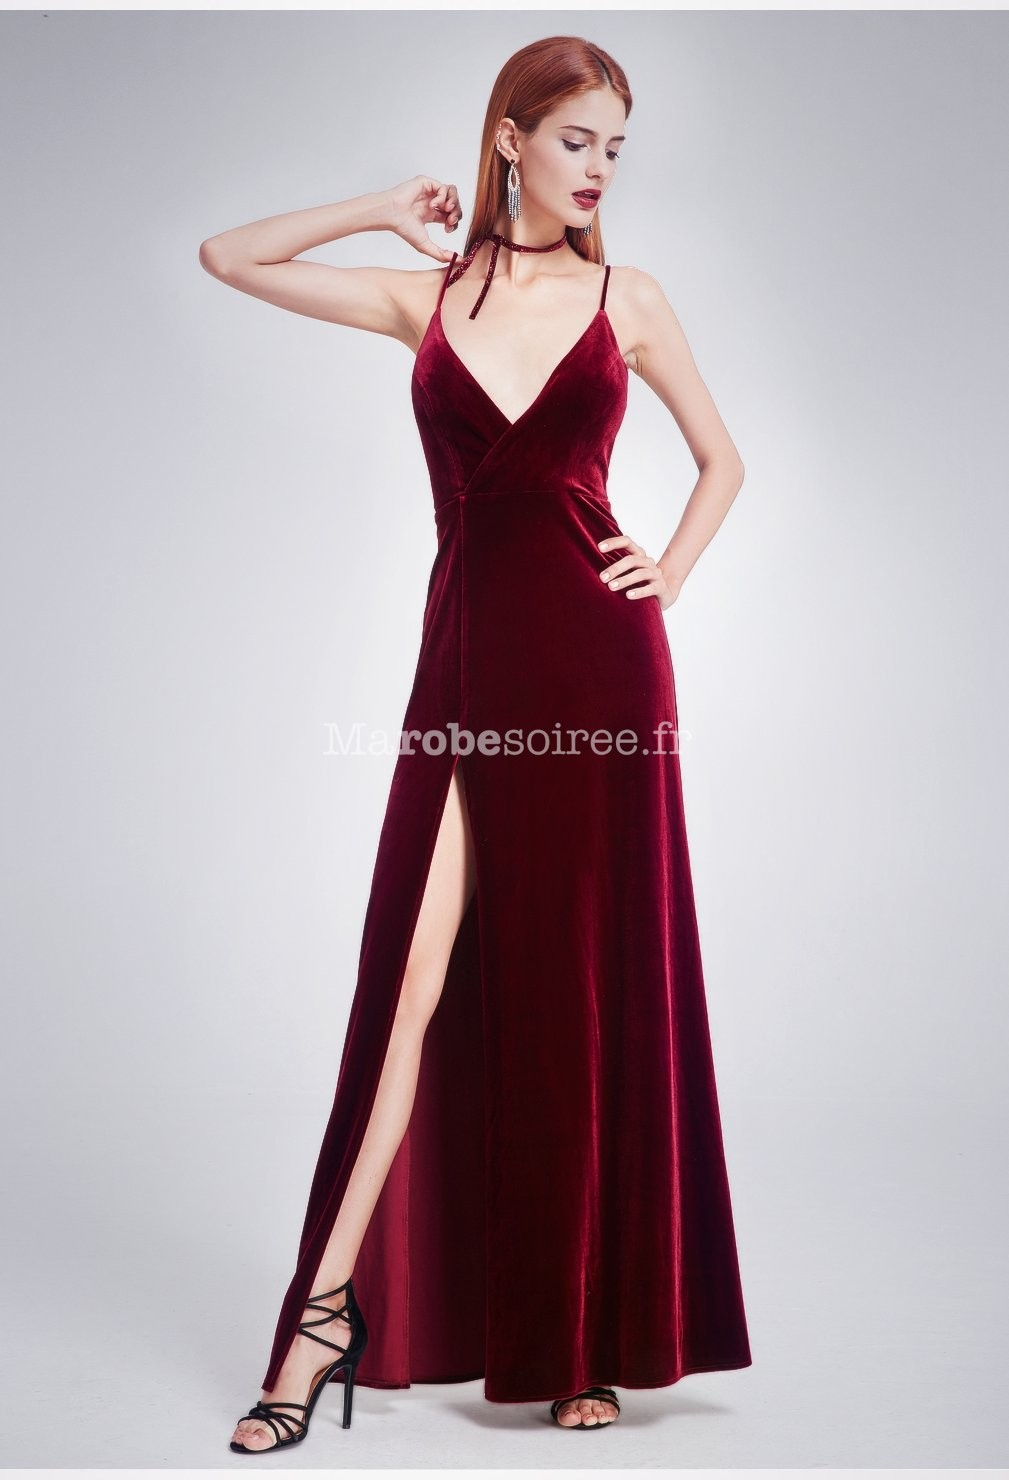 Robe soiree velours rouge